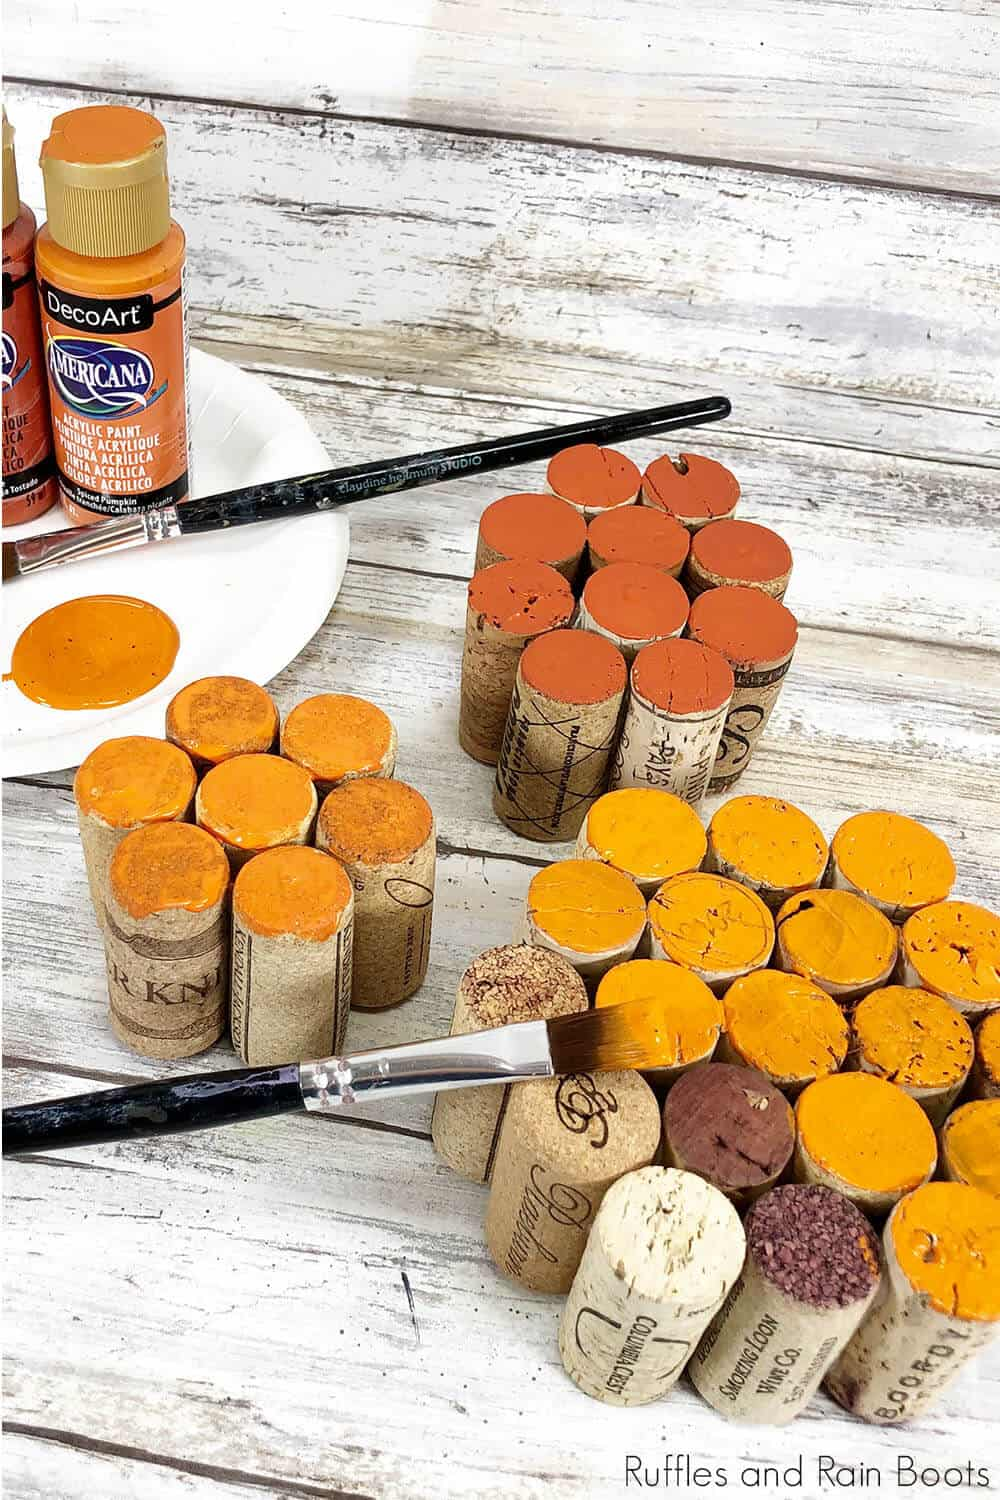 in-process step of painting glued corks to make a diy wine cork pumpkin craft